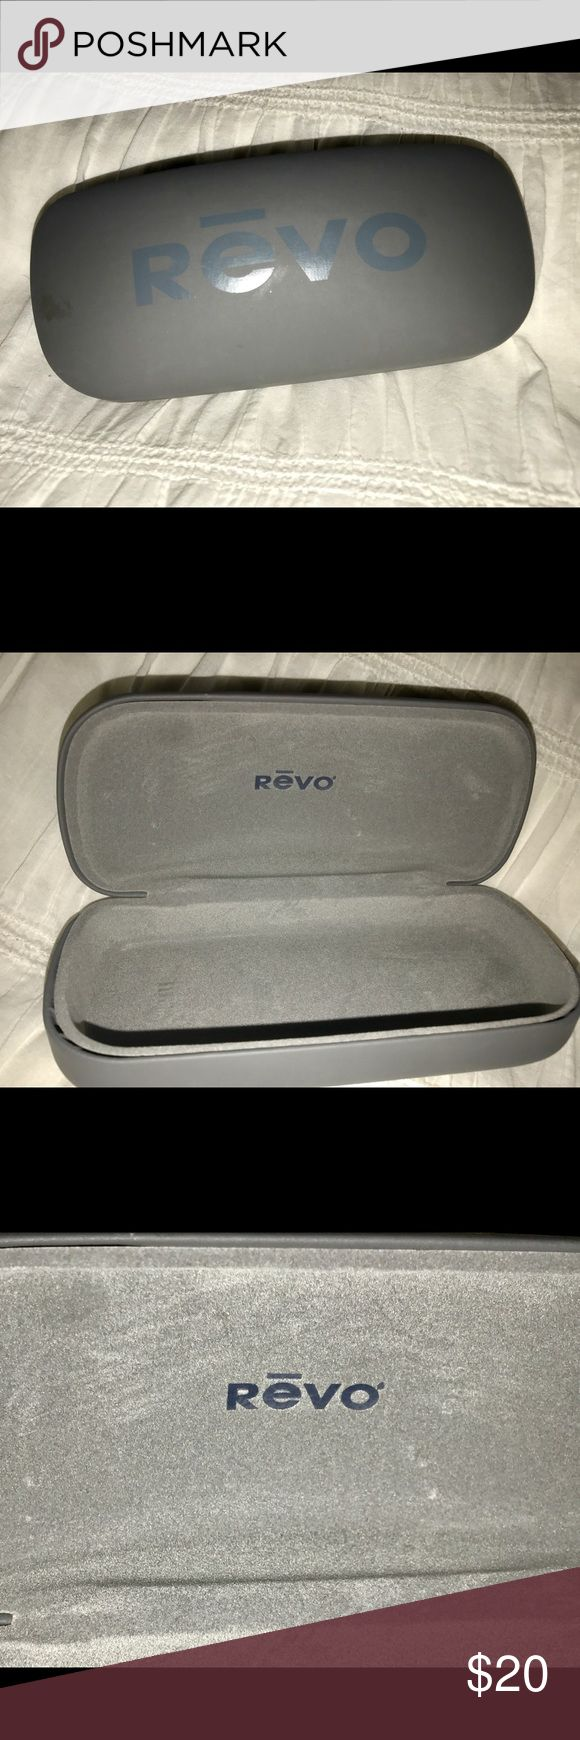 REVO Sunglasses hard case only REVO Sunglasses gray hard case with hinged closure CASE ONLY NO SUNGLASSES!! Does come with a Sunglasses microfiber cleaning cloth with REVO printed on it that has never been used. Gray in color. Only defect is a light scratch near the hinge on the backside that is pictured. Revo Accessories Sunglasses